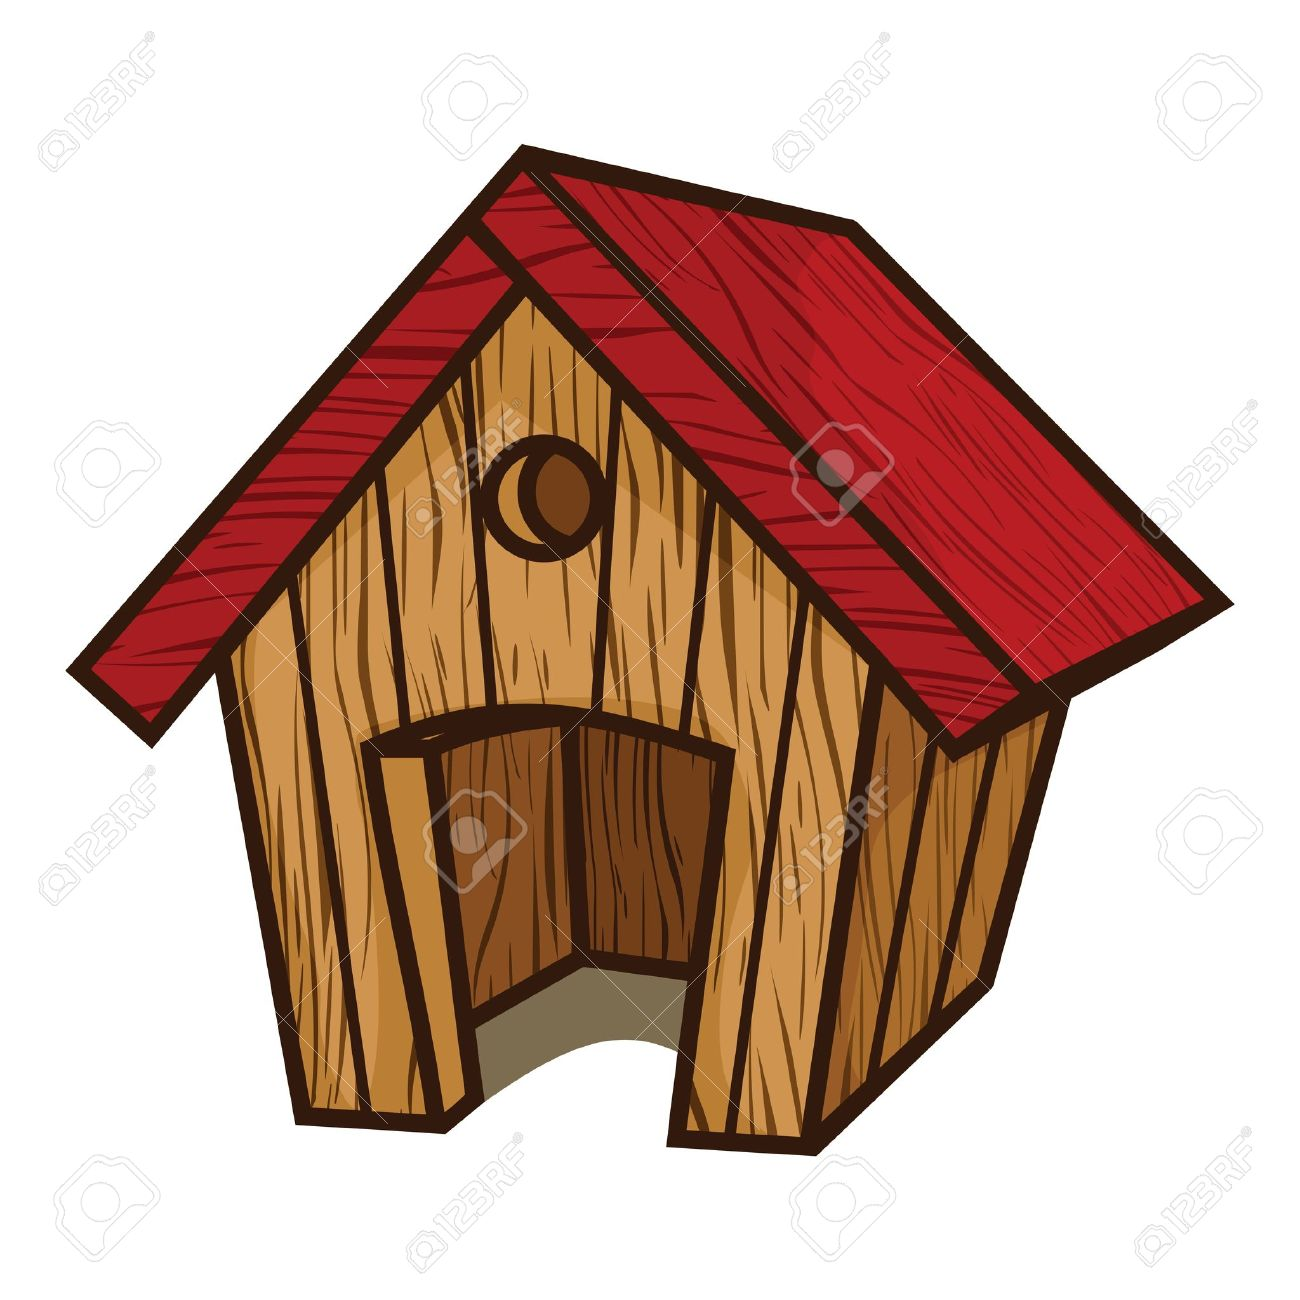 shelter house clipart clipground